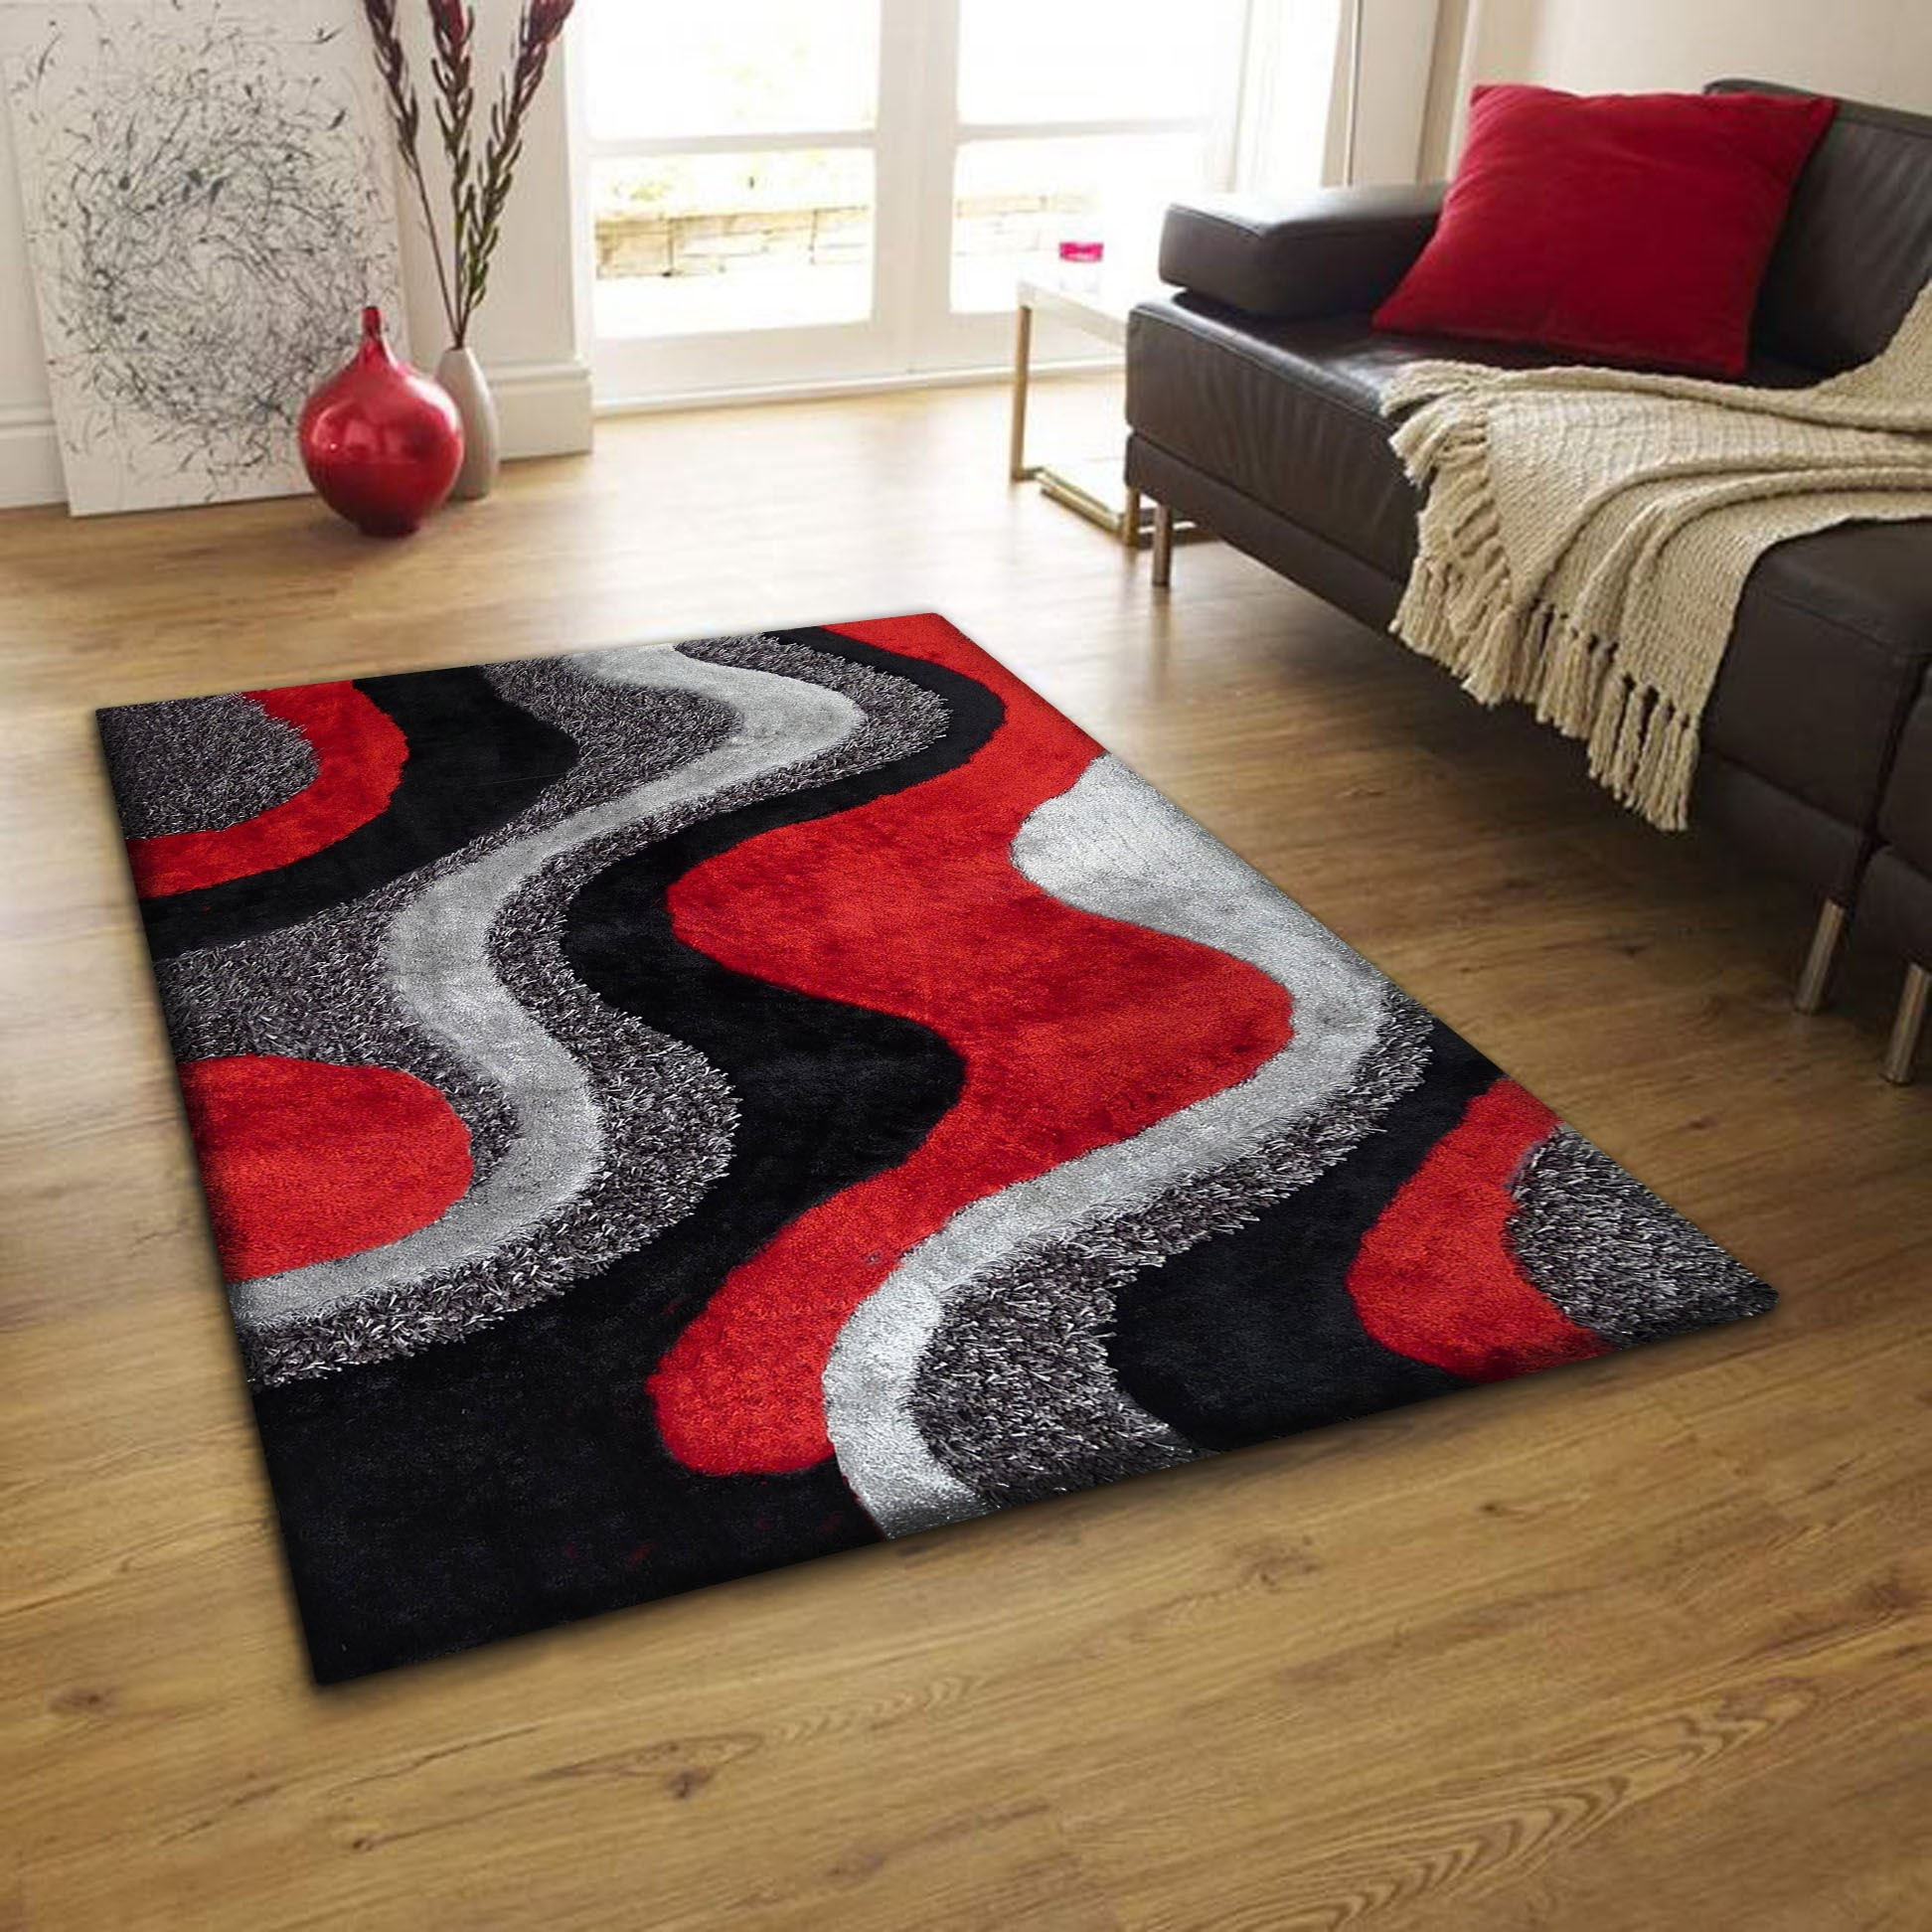 Concept red and grey rugs area rug for living room bedroom throw rugs zgdavou